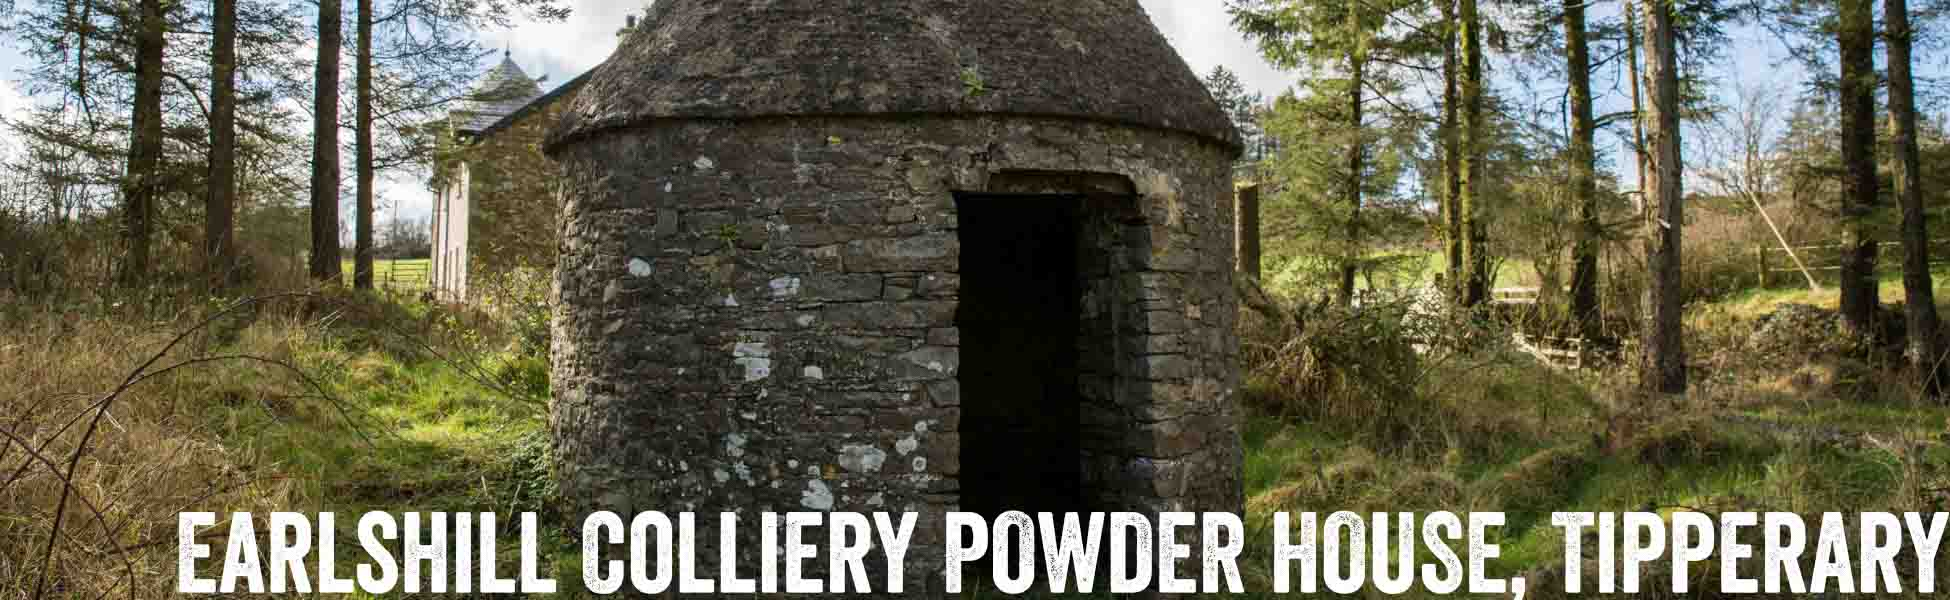 Earlshill Colliery and Powder House, Slieveardagh, County Tipperary